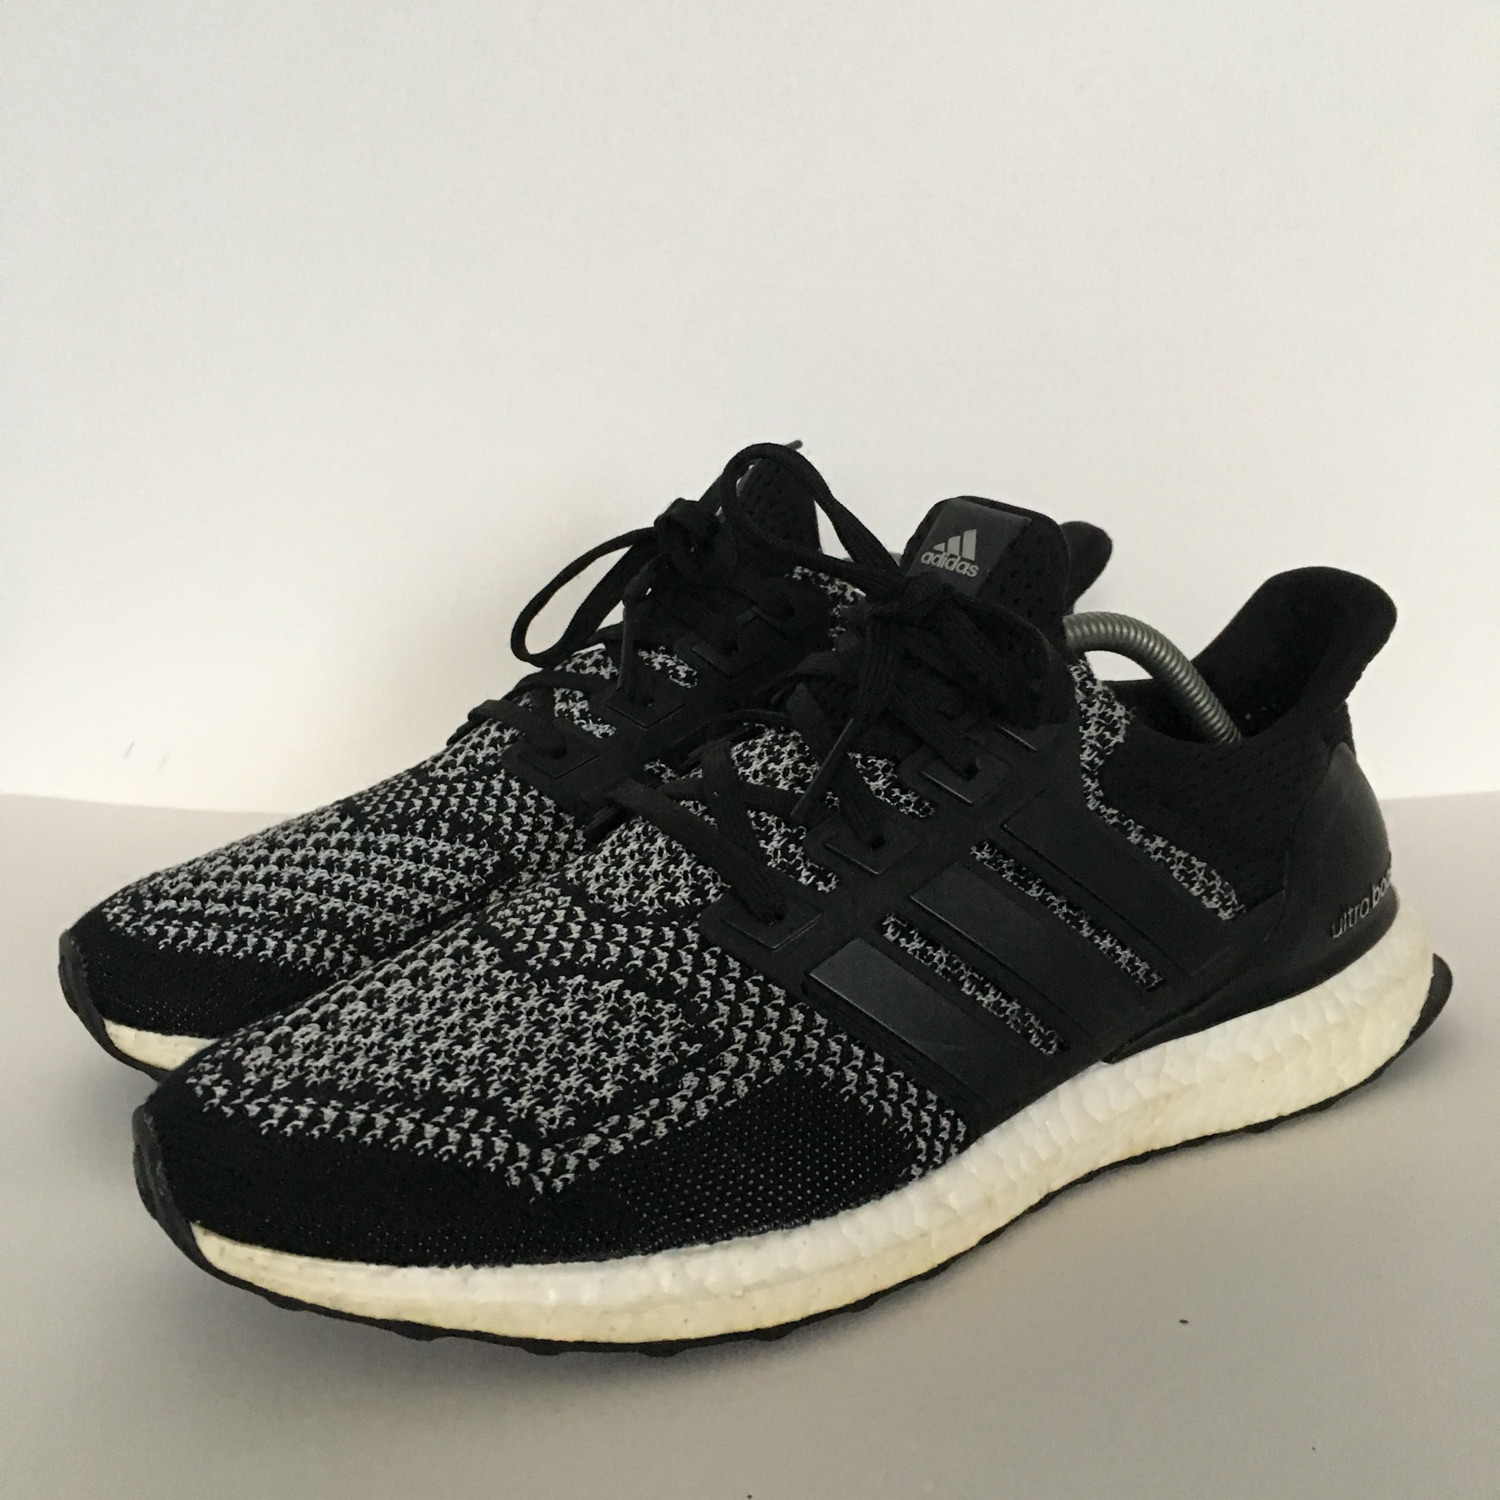 wholesale dealer ac564 509d8 Adidas Ultra Boost 1.0 Black 3M Reflective